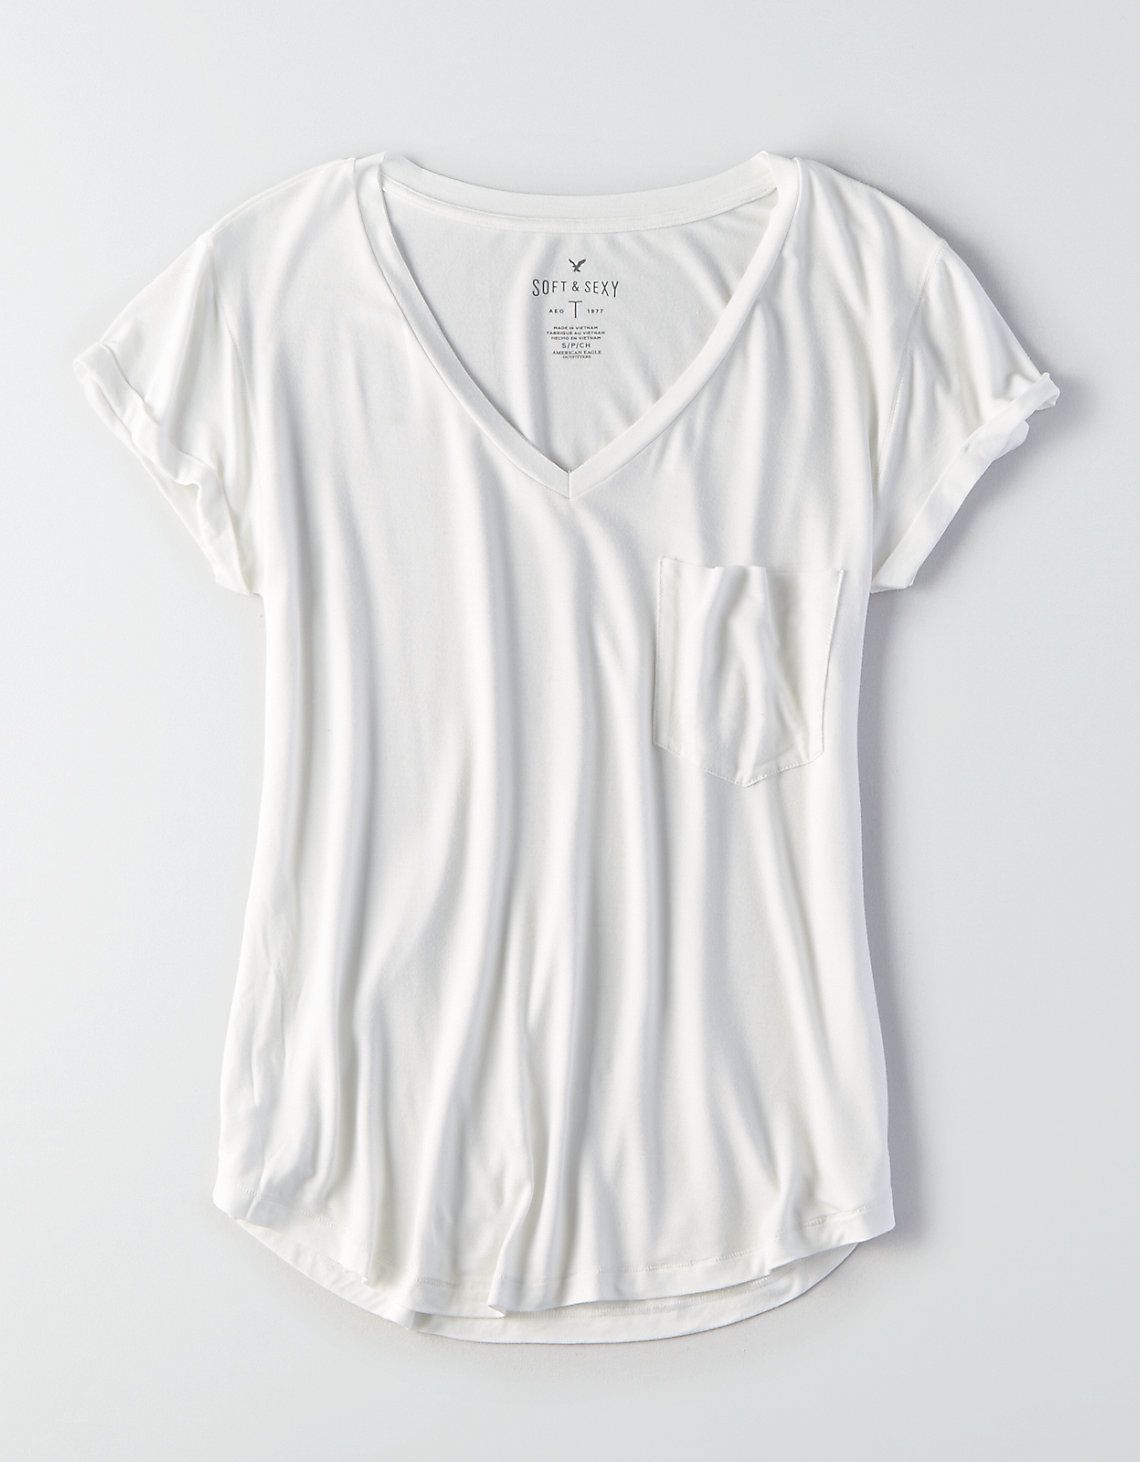 ee9ff9d6 AE Soft & Sexy Favorite T-Shirt in 2019 | Wearables | Oversized ...